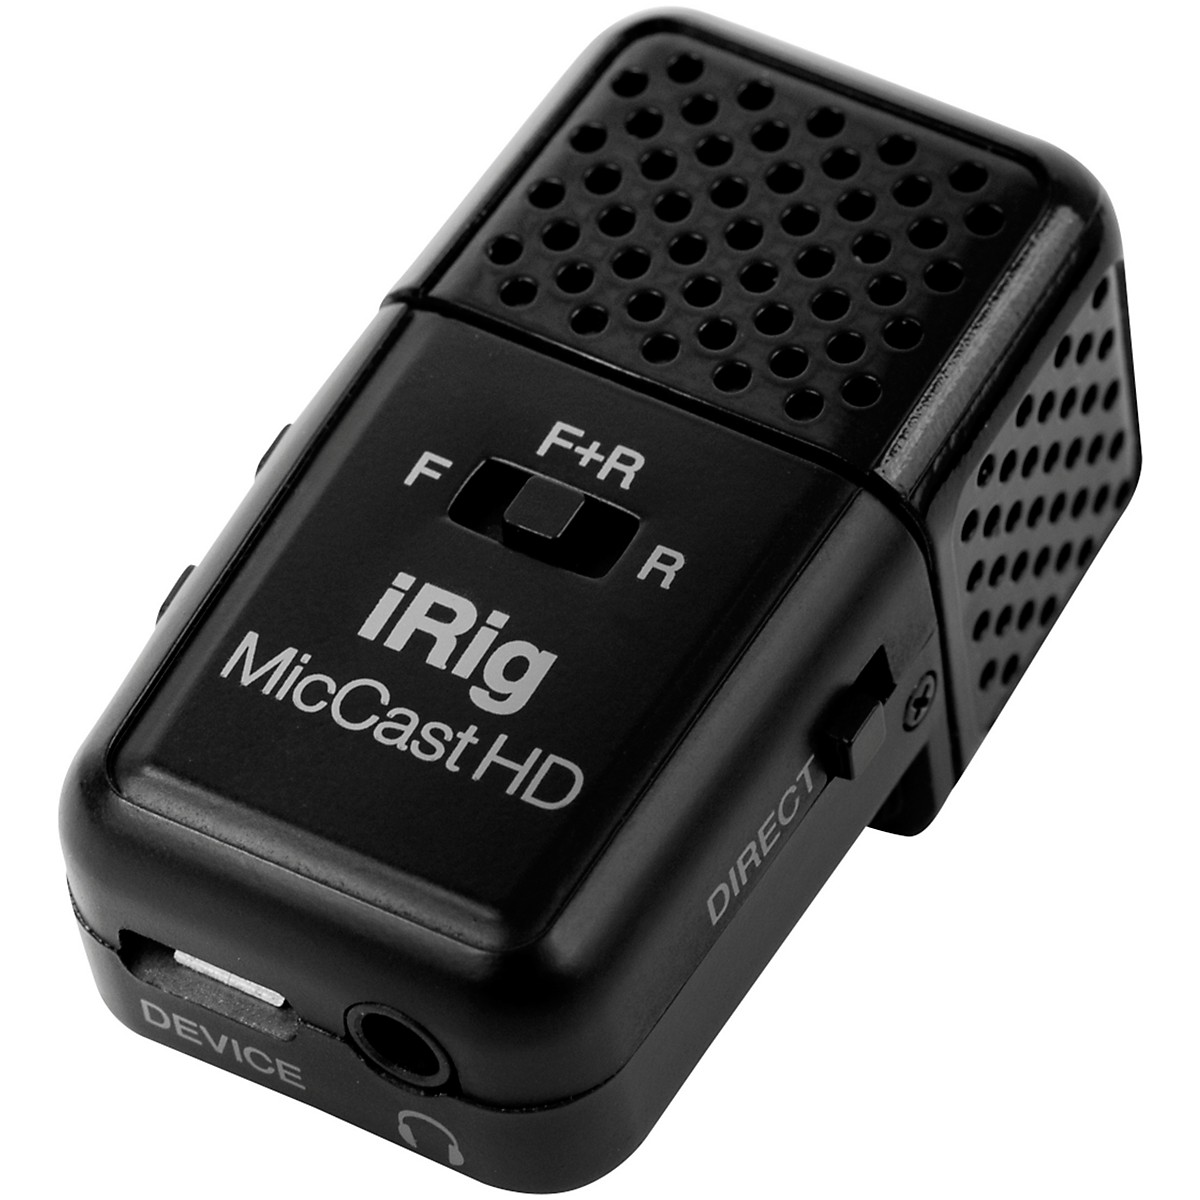 IK Multimedia iRig Mic Cast HD for Mac and Select Android Devices